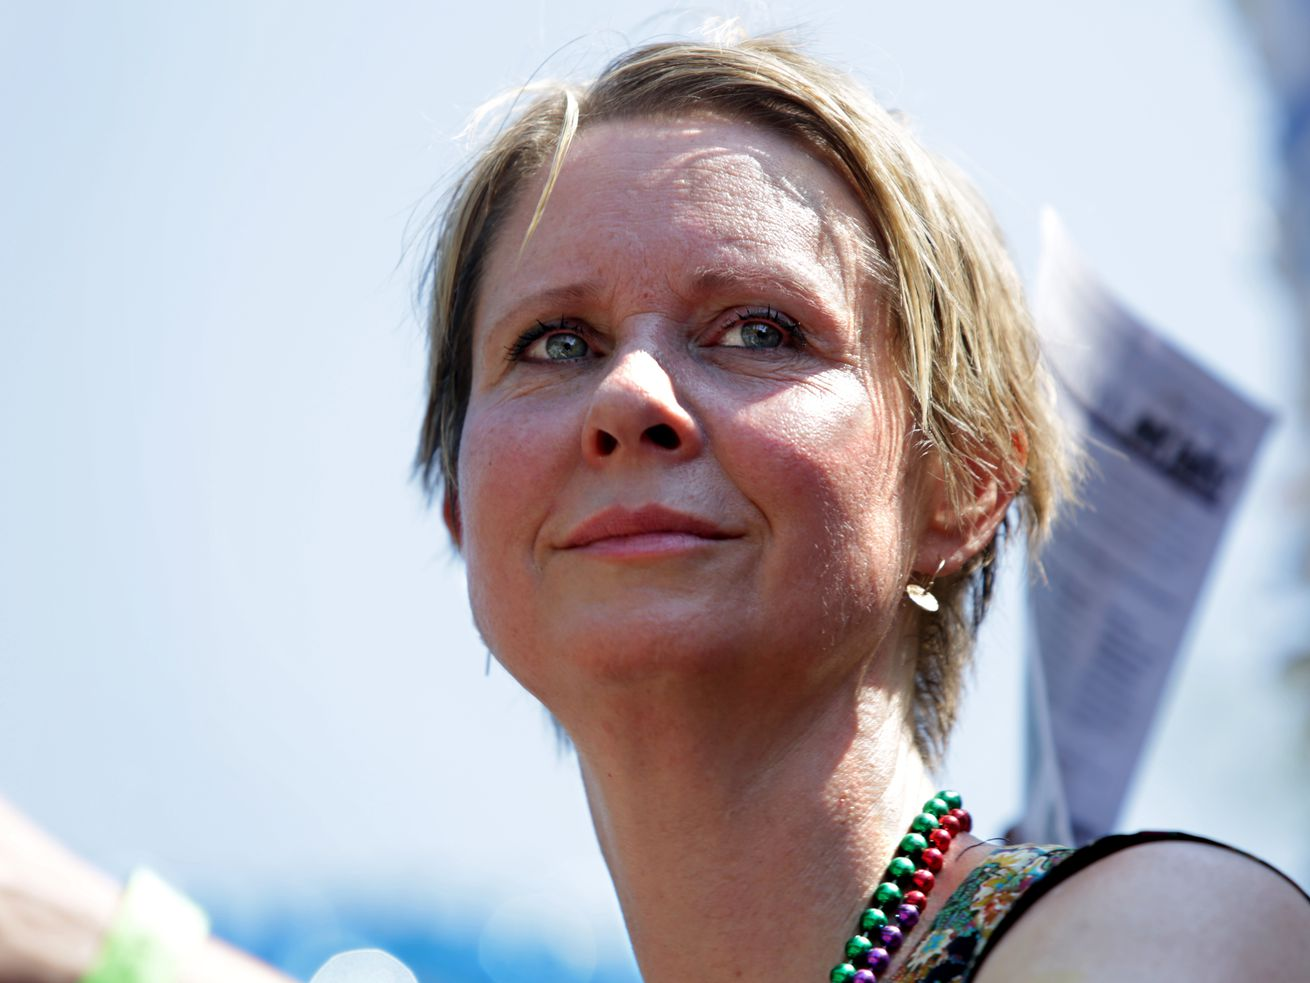 Actress and activist Cynthia Nixon, who is running against Gov. Andrew Cuomo in New York's Democratic primary.